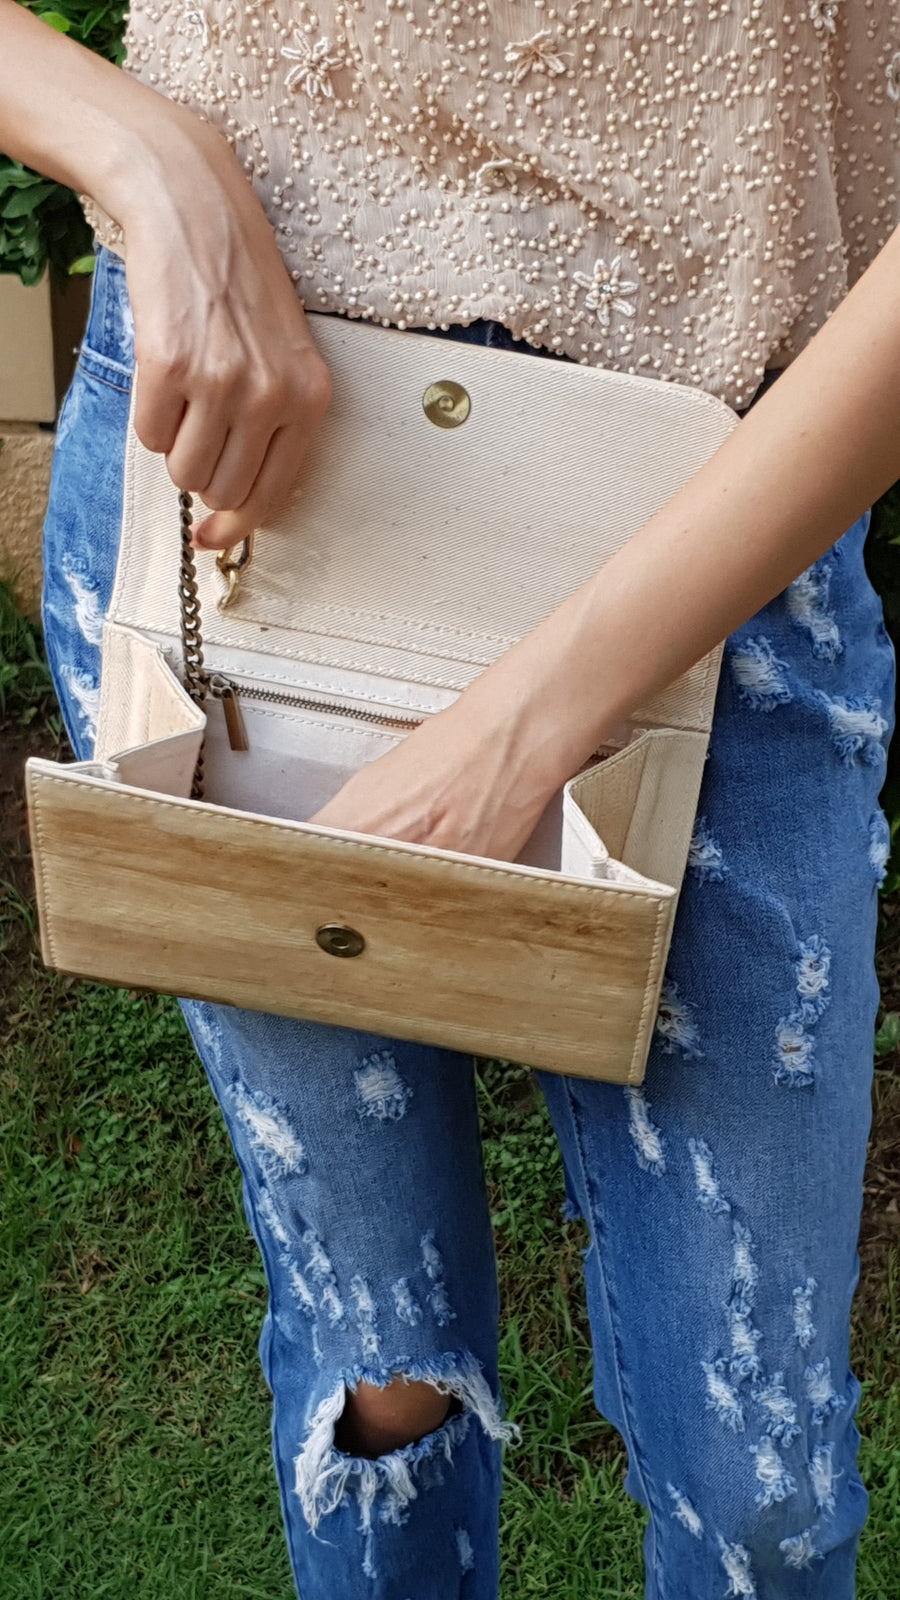 Perla Banana Natural Handmade Clutch